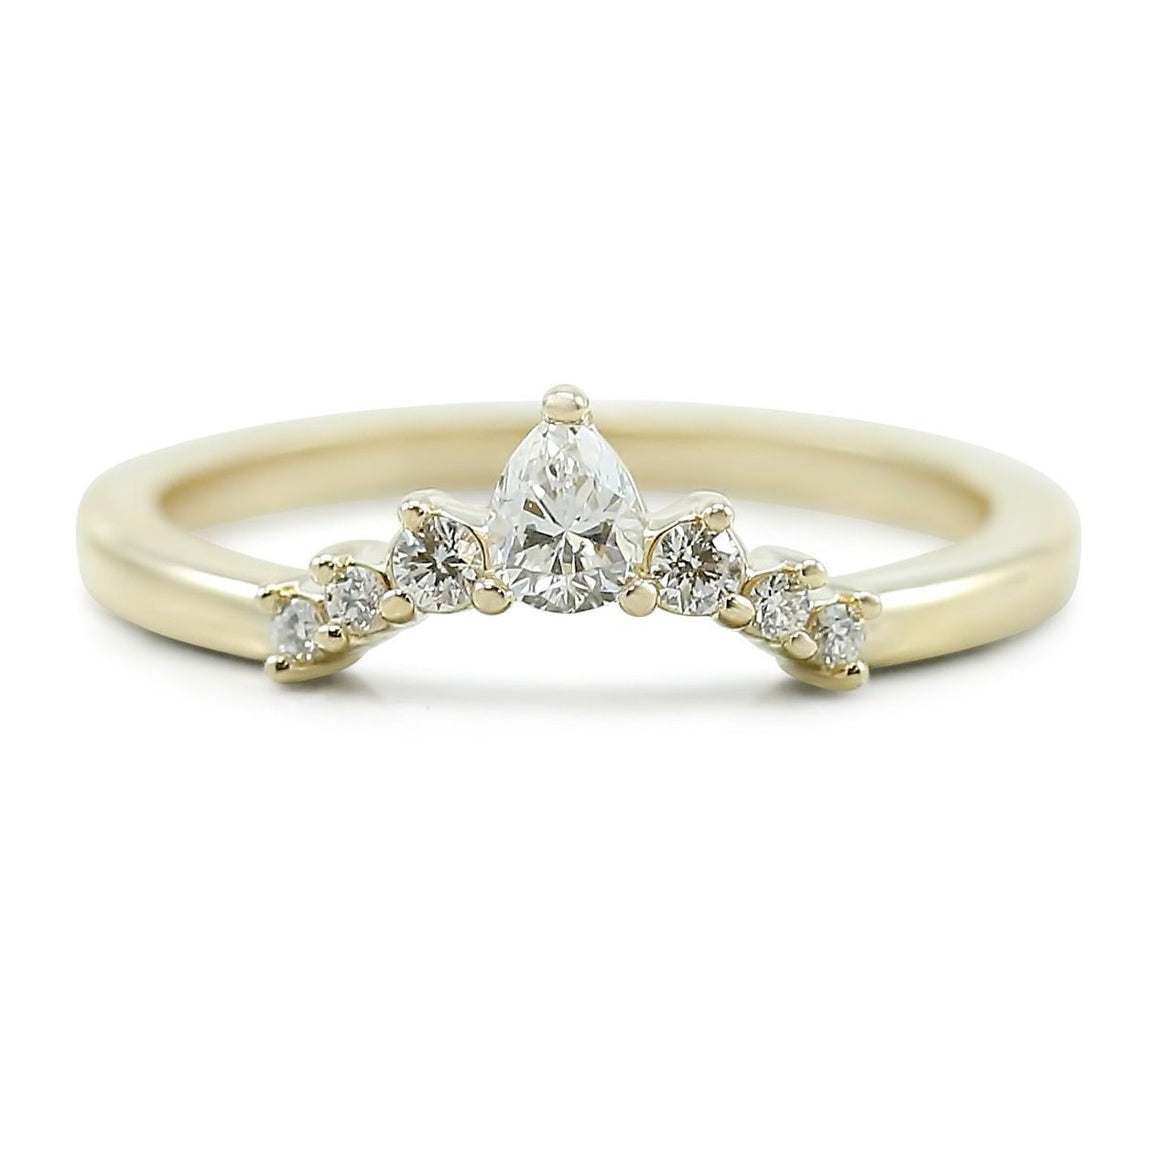 diamond pear shaped contour wedding band available in yellow white or rose gold.